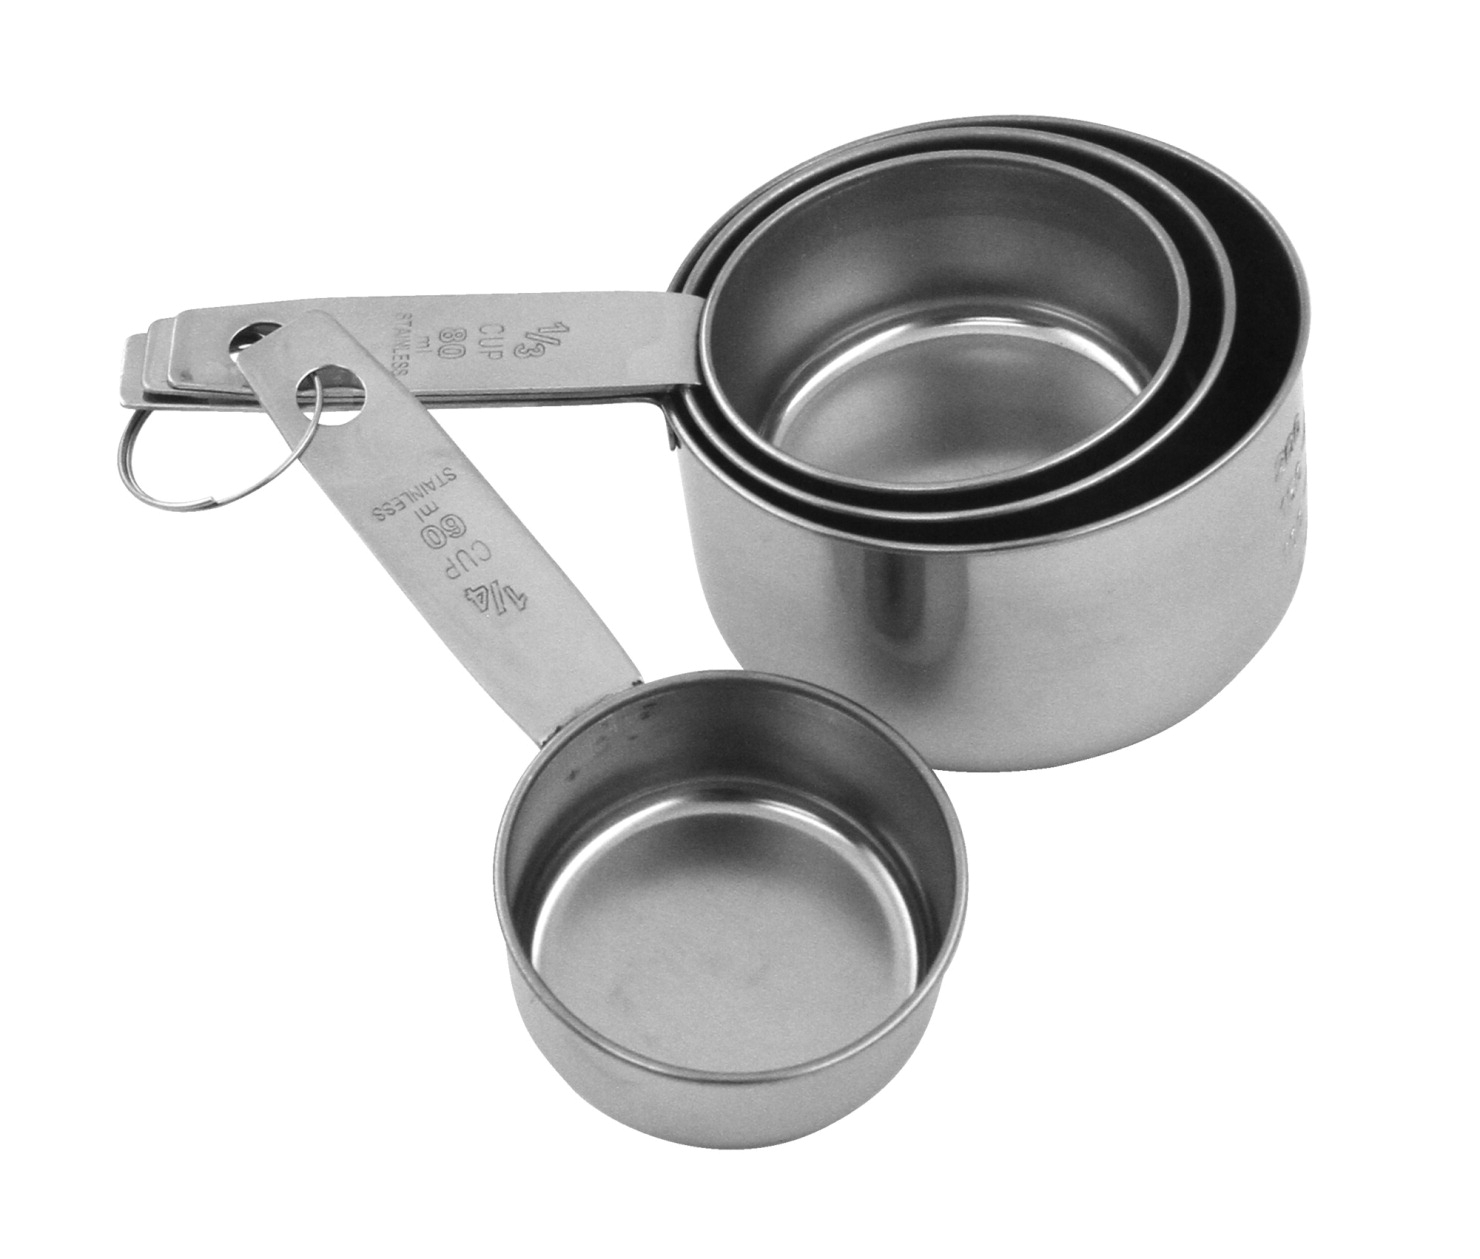 Learning: Supplies Cleaning Food Service Kitchen Utensils & Kitchen Tools - 425747 - Sunbeam Durable Dishwasher Safe Measuring Cup Set With Metric Equivalents; Stainless Steel; Set Of 4 425747